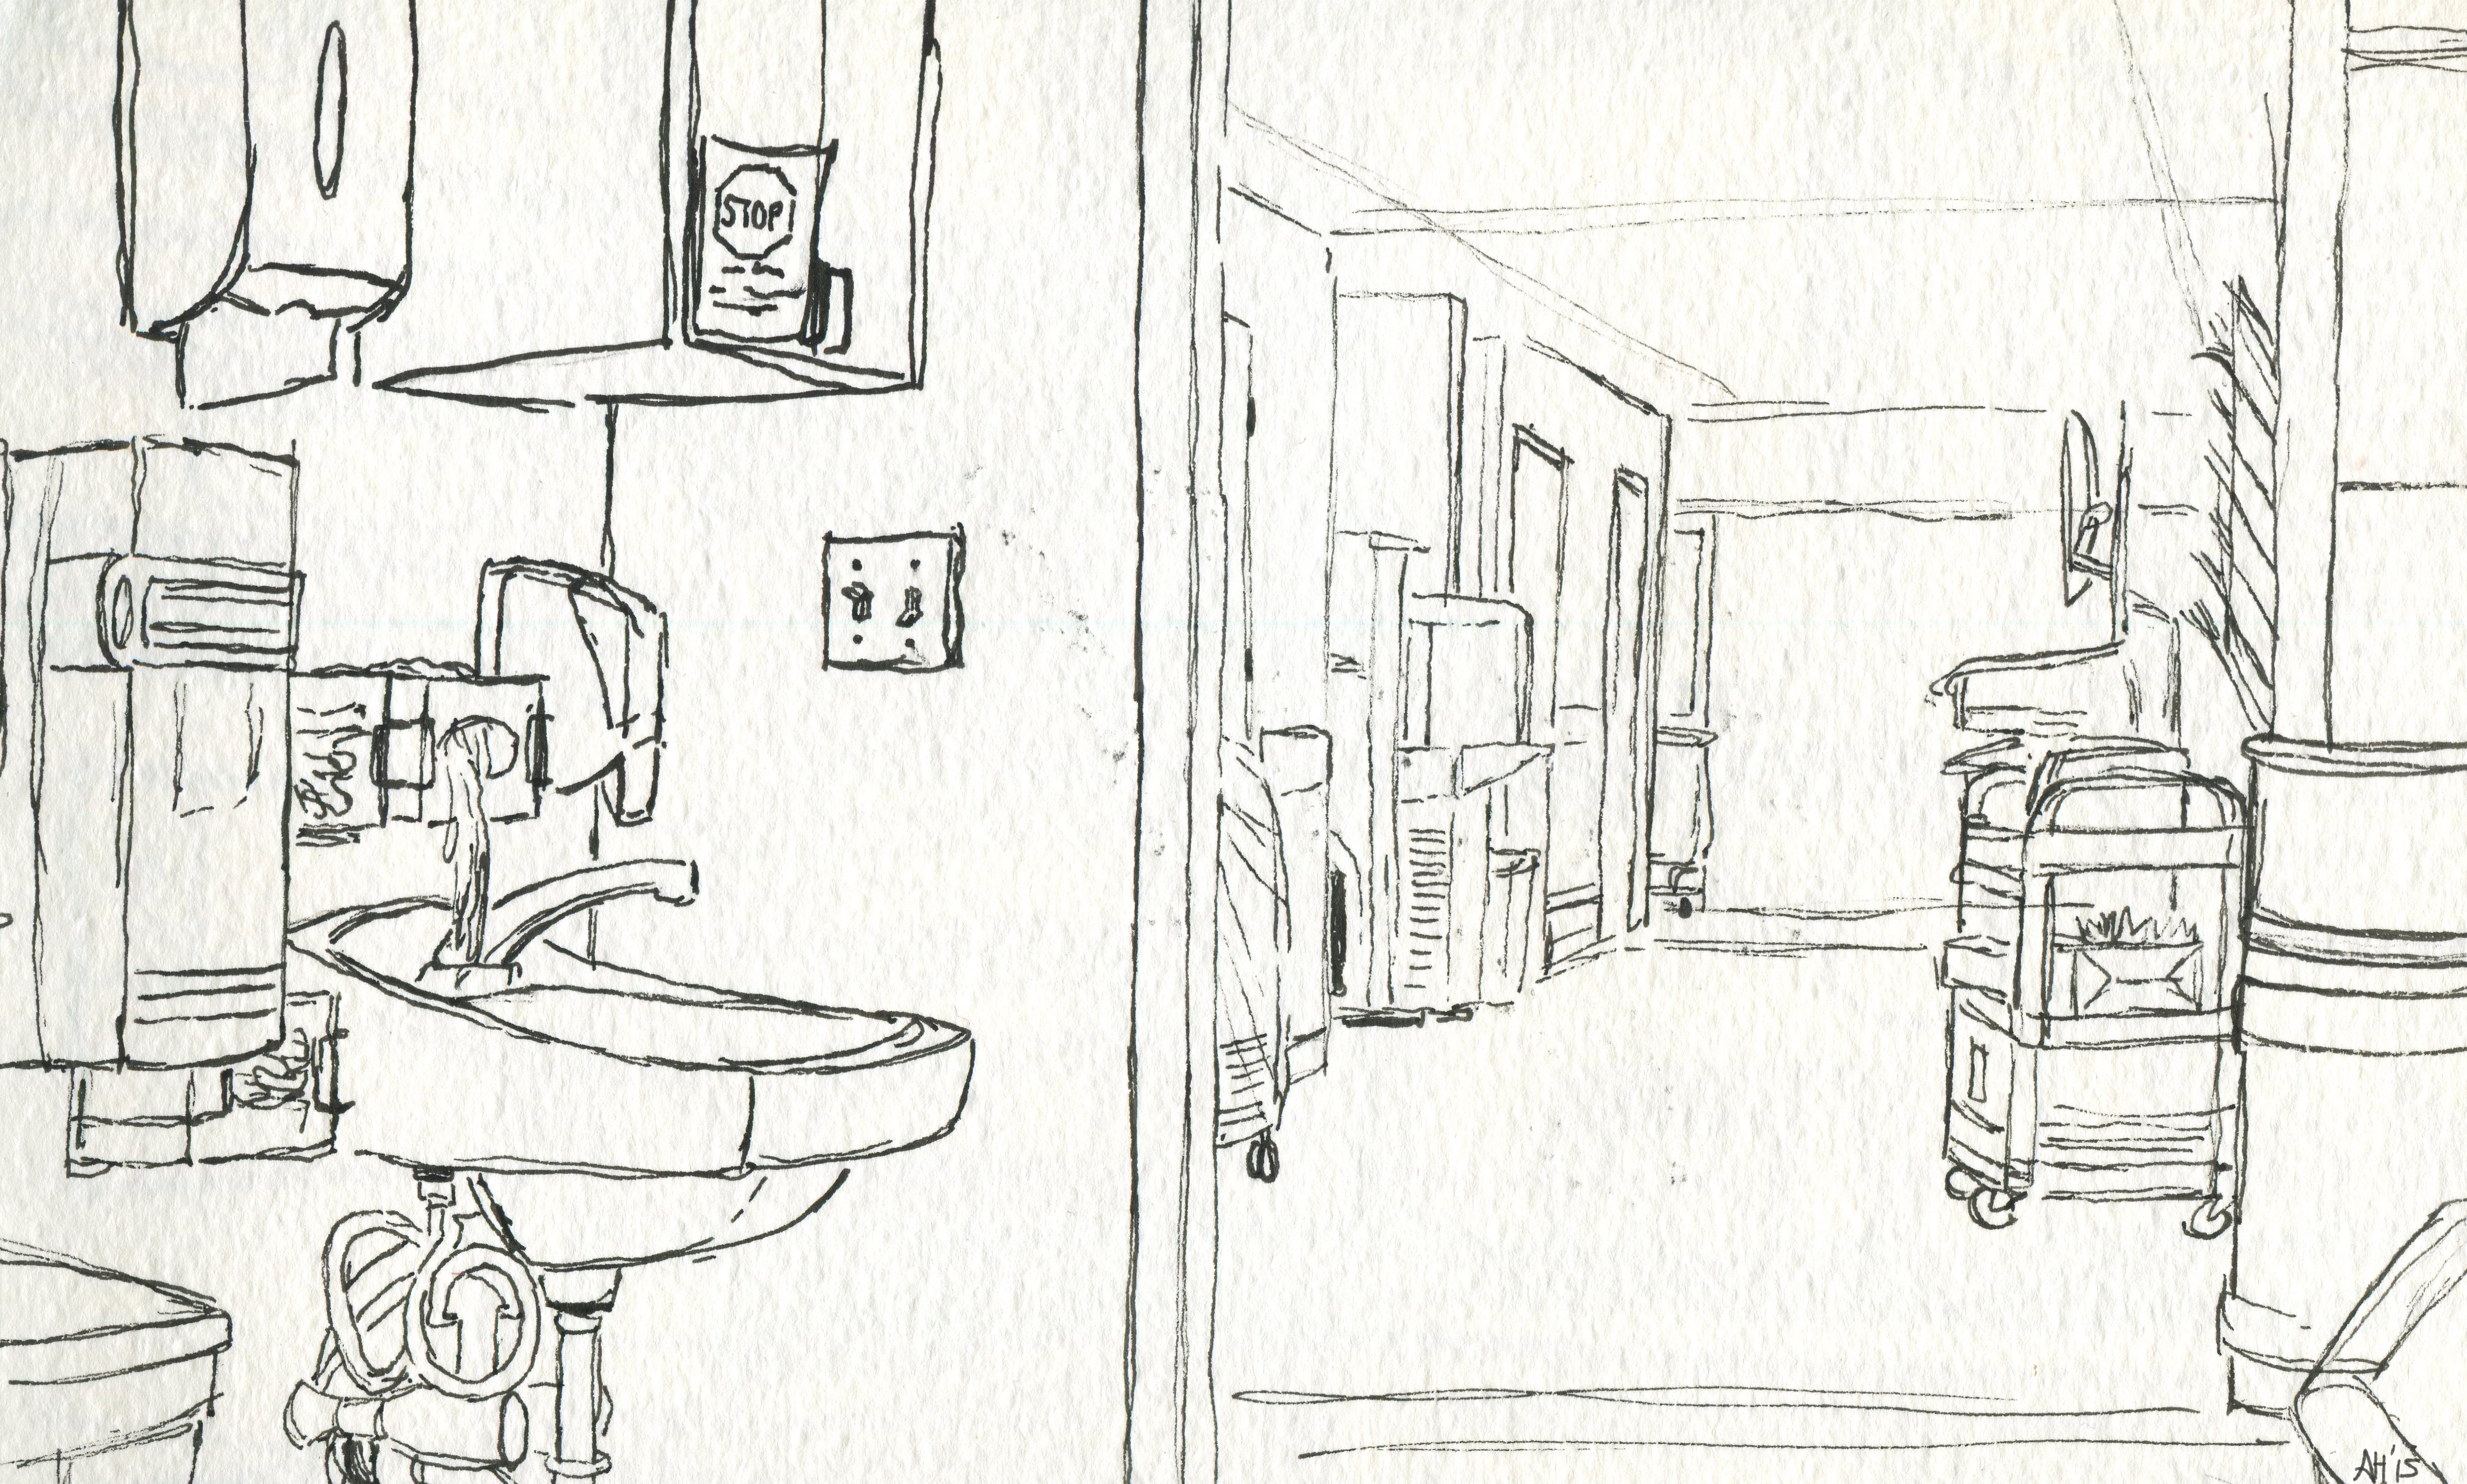 the view of an icu room to the hallway outside sketched by alleanna harris